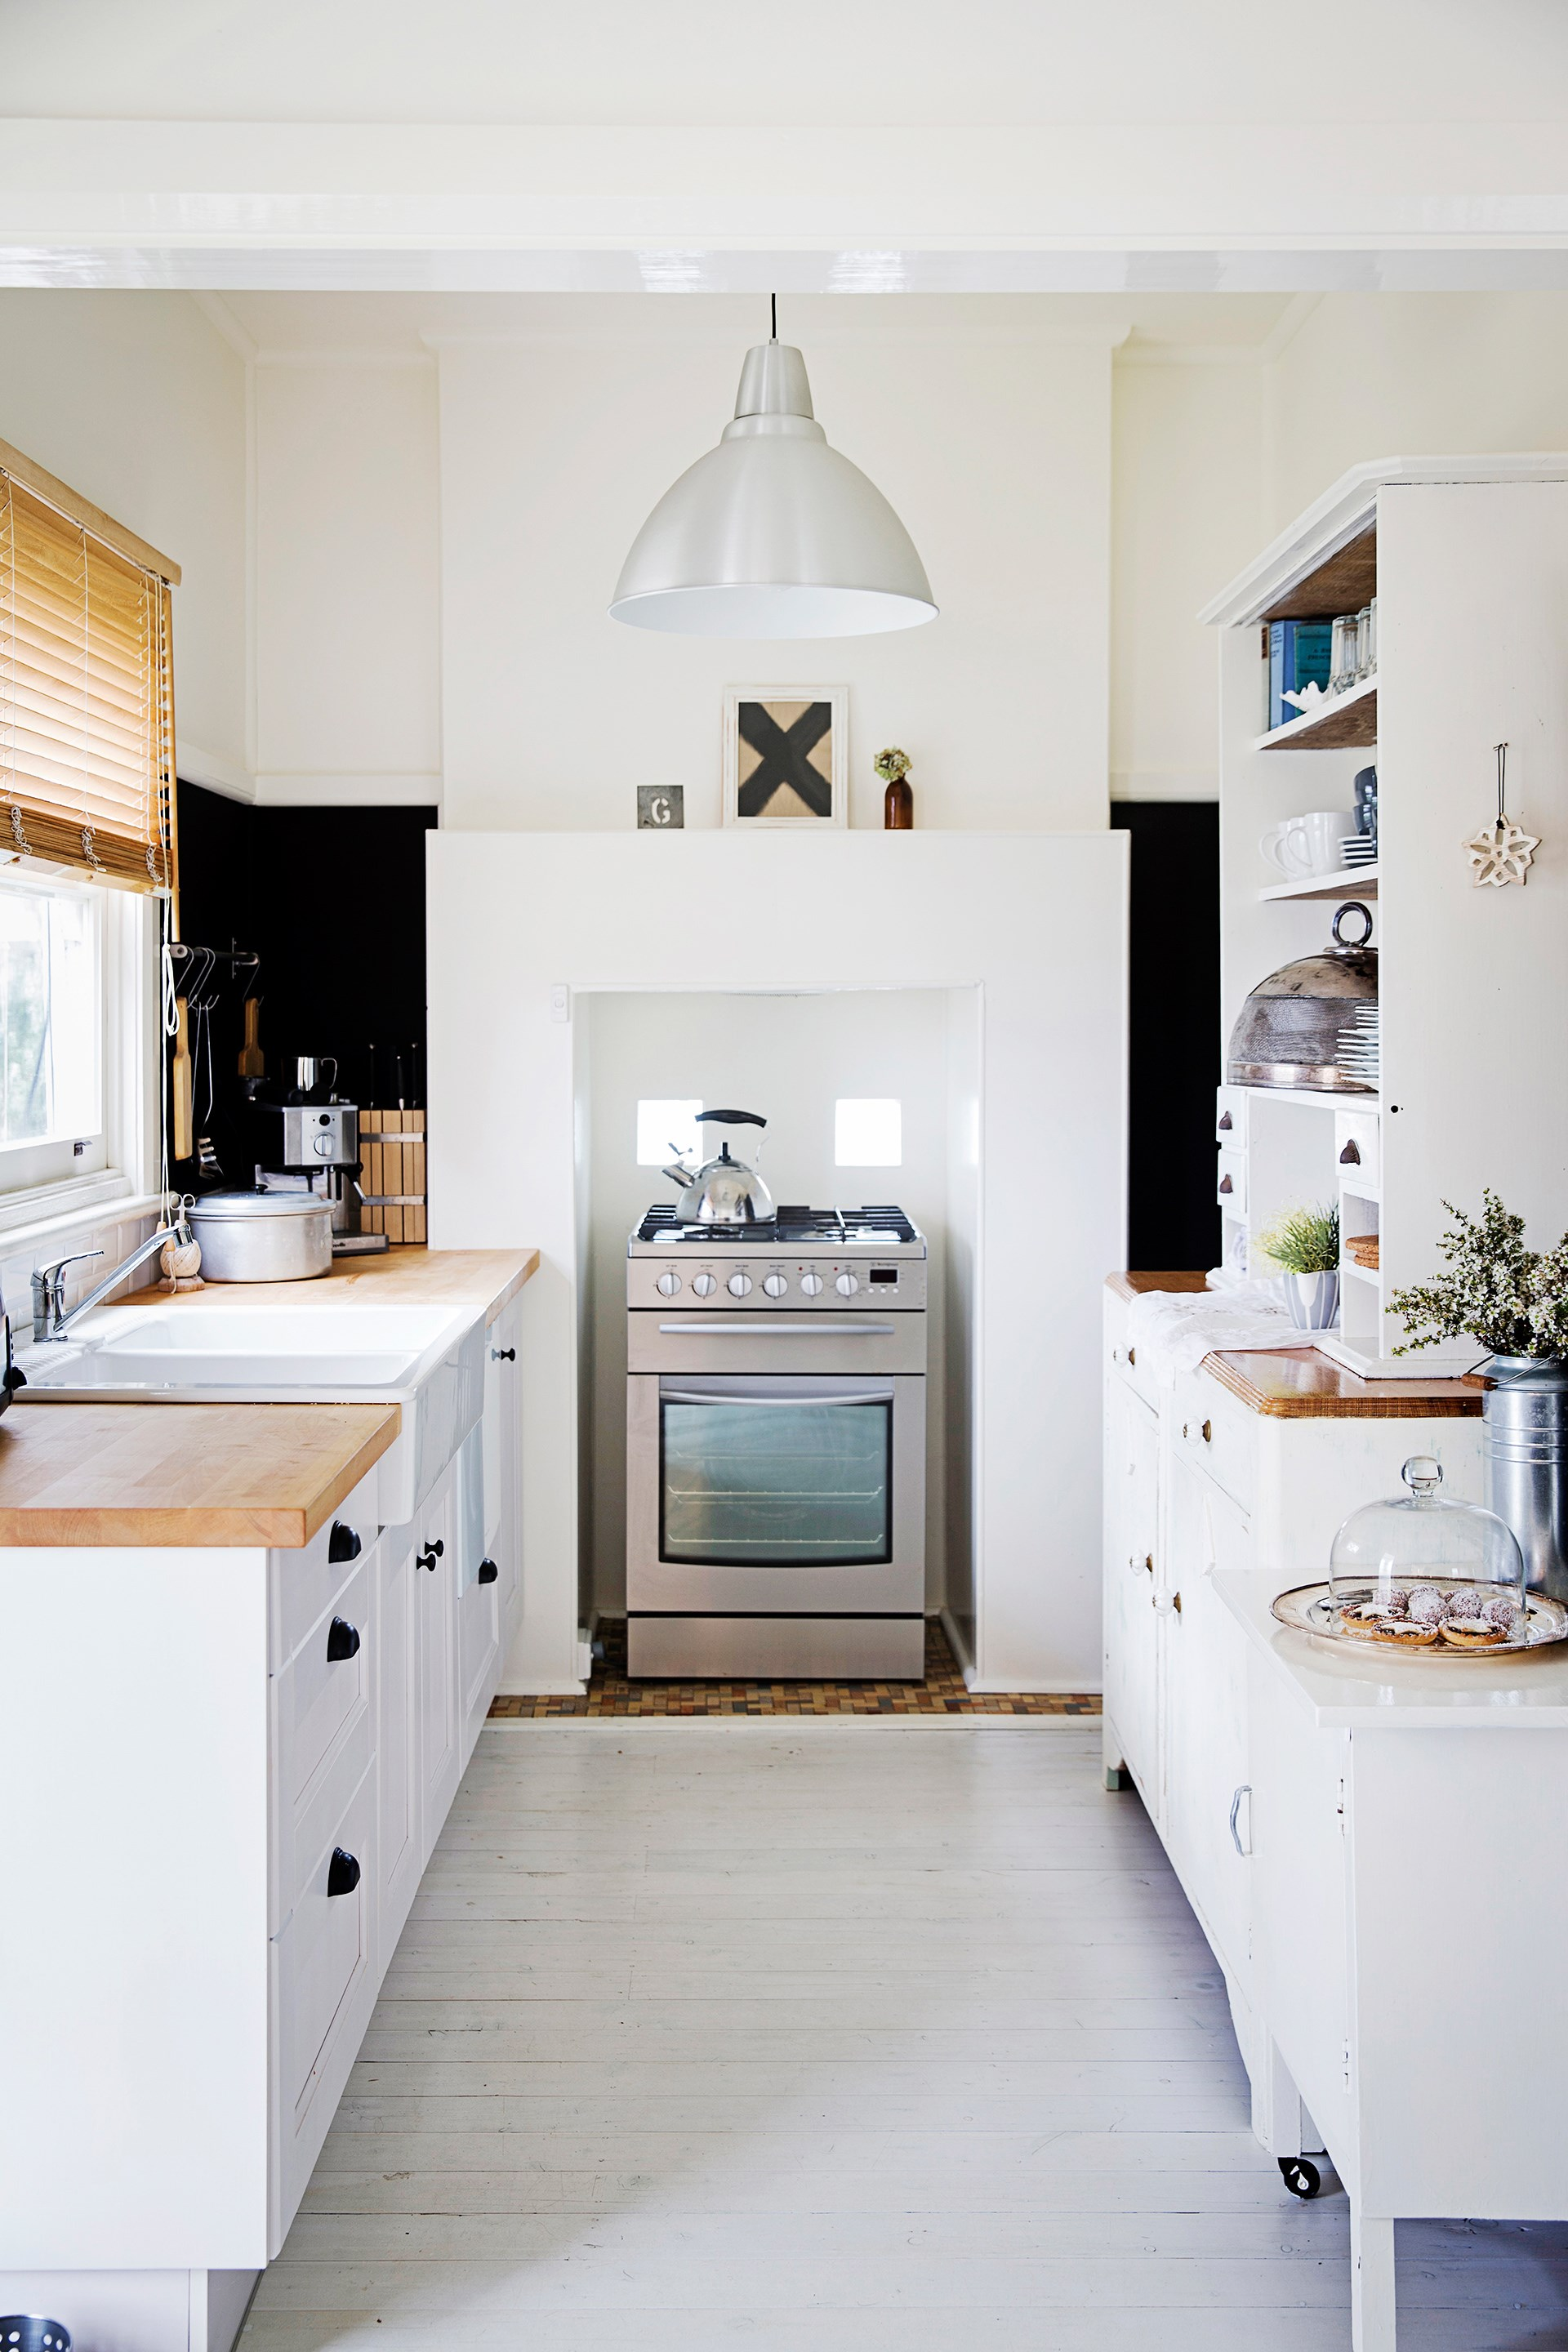 """Homeowners Beth and Warren turned an old weatherboard boatshed in the sleepy village of Erowal Bay, NSW, into a stylish waterfront home using upcycled wares, heirlooms and elbow grease. In the kitchen, whitewashing the floor and injecting plenty of white and timber added a beachy feel. """"I love the drama of the black walls against the white Ikea cabinets,"""" Beth says. [Take the tour](http://www.homestolove.com.au/gallery-beth-and-warrens-idyllic-beach-house-renovation-2529/?utm_campaign=supplier/